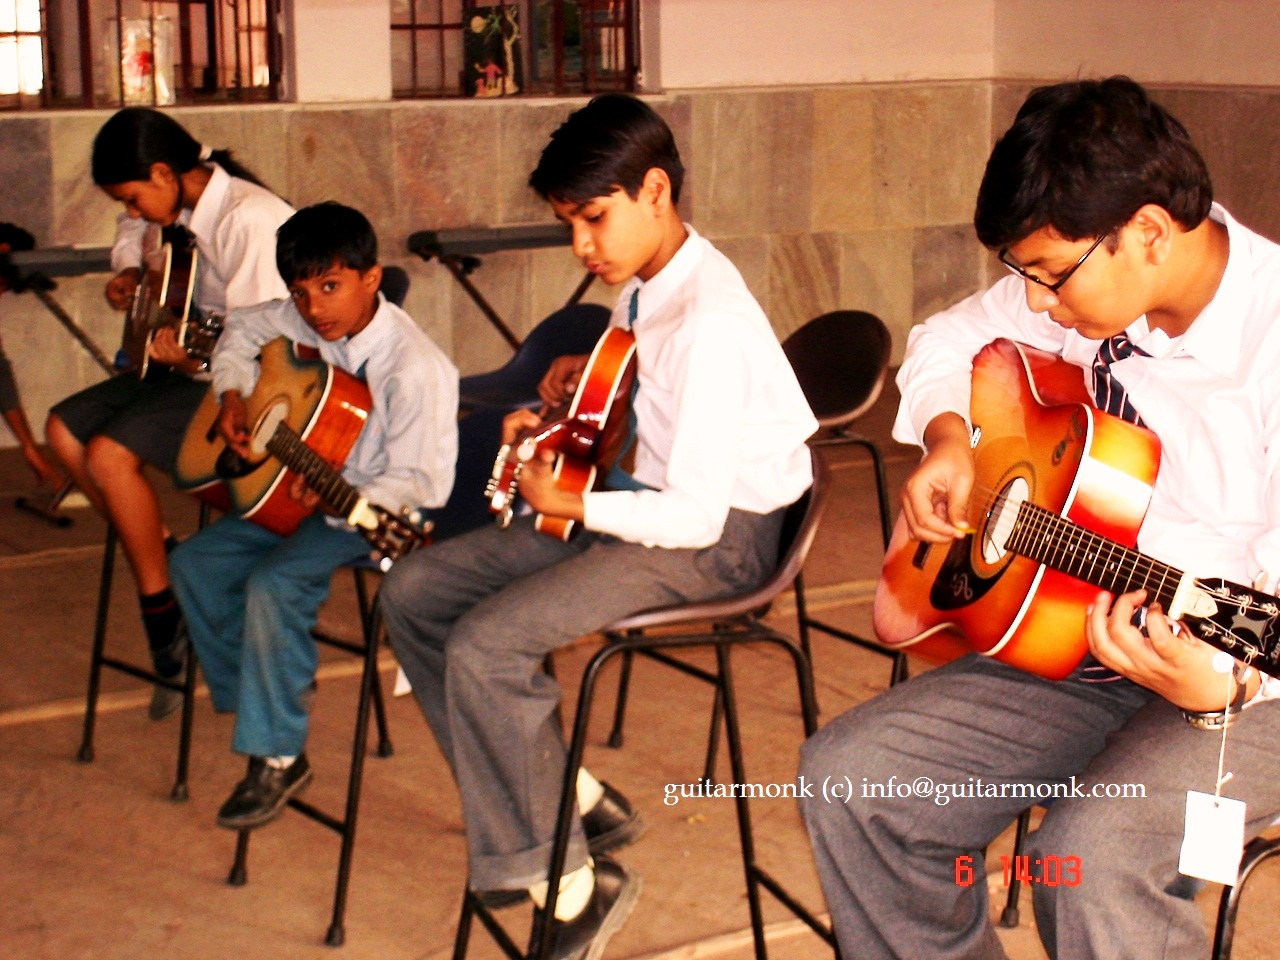 Guitarmonk Club school students